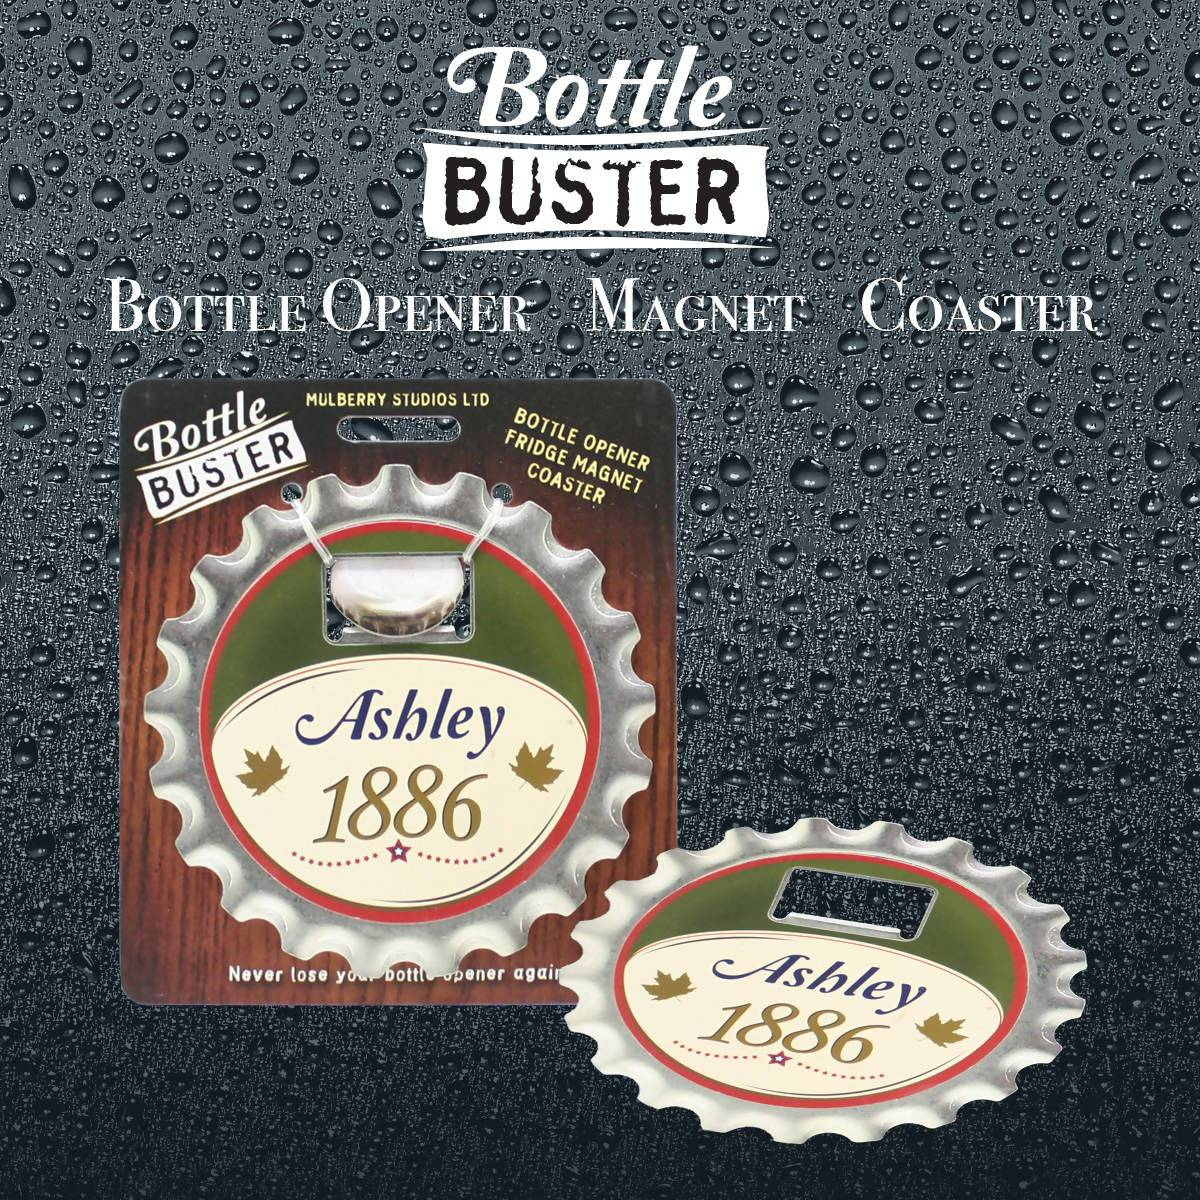 BOTTLE BUSTER - Best Bottle Opener : Ashley - Bottle Openers - La Belle Collection - Naiise